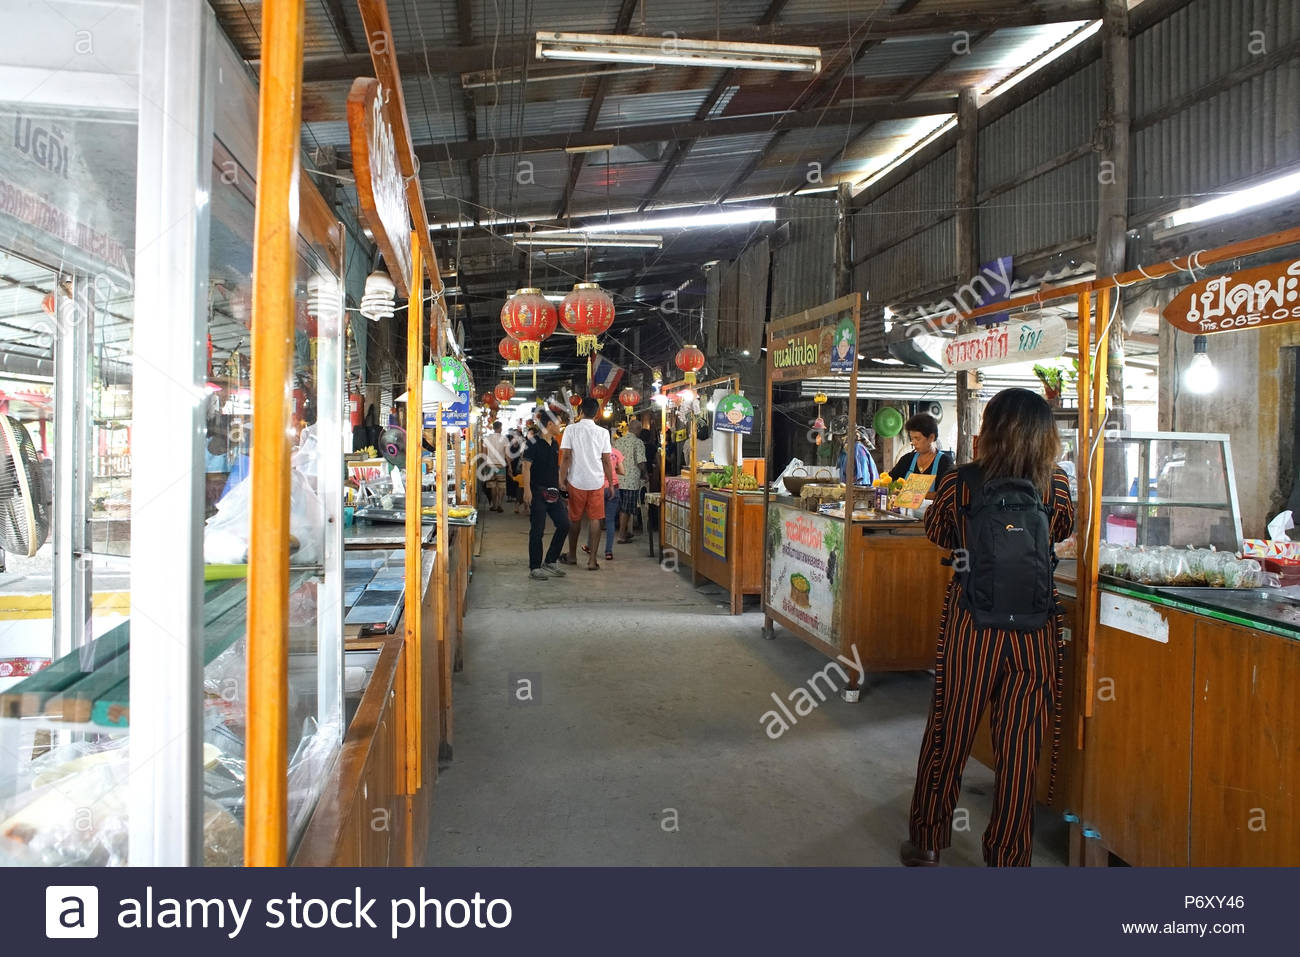 Klong Suan 100 years ancient market, the famous antique market in Chachoengsao province,Thailand - Stock Image